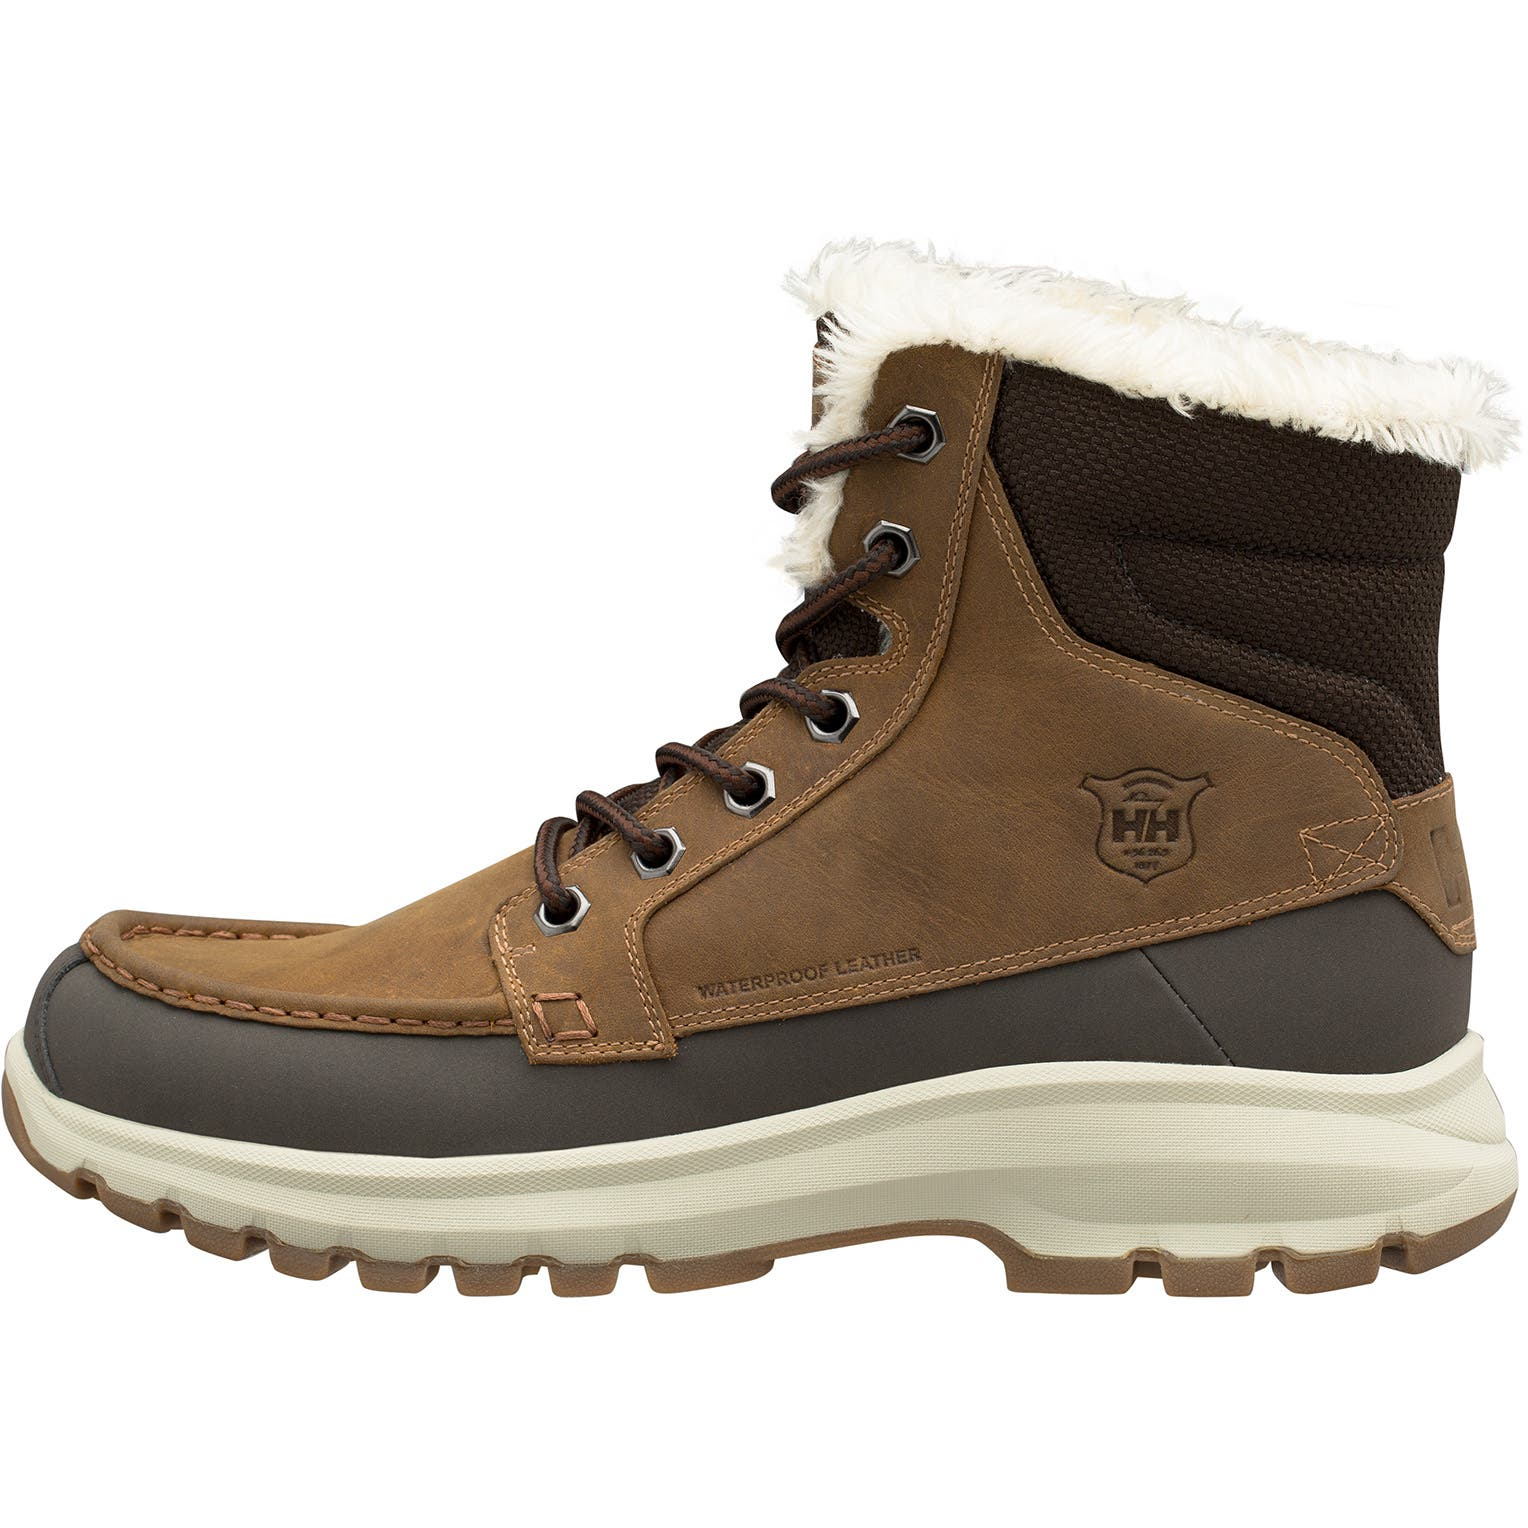 new styles 5f1e2 6c28d Helly Hansen Mens Garibaldi V3 Boot